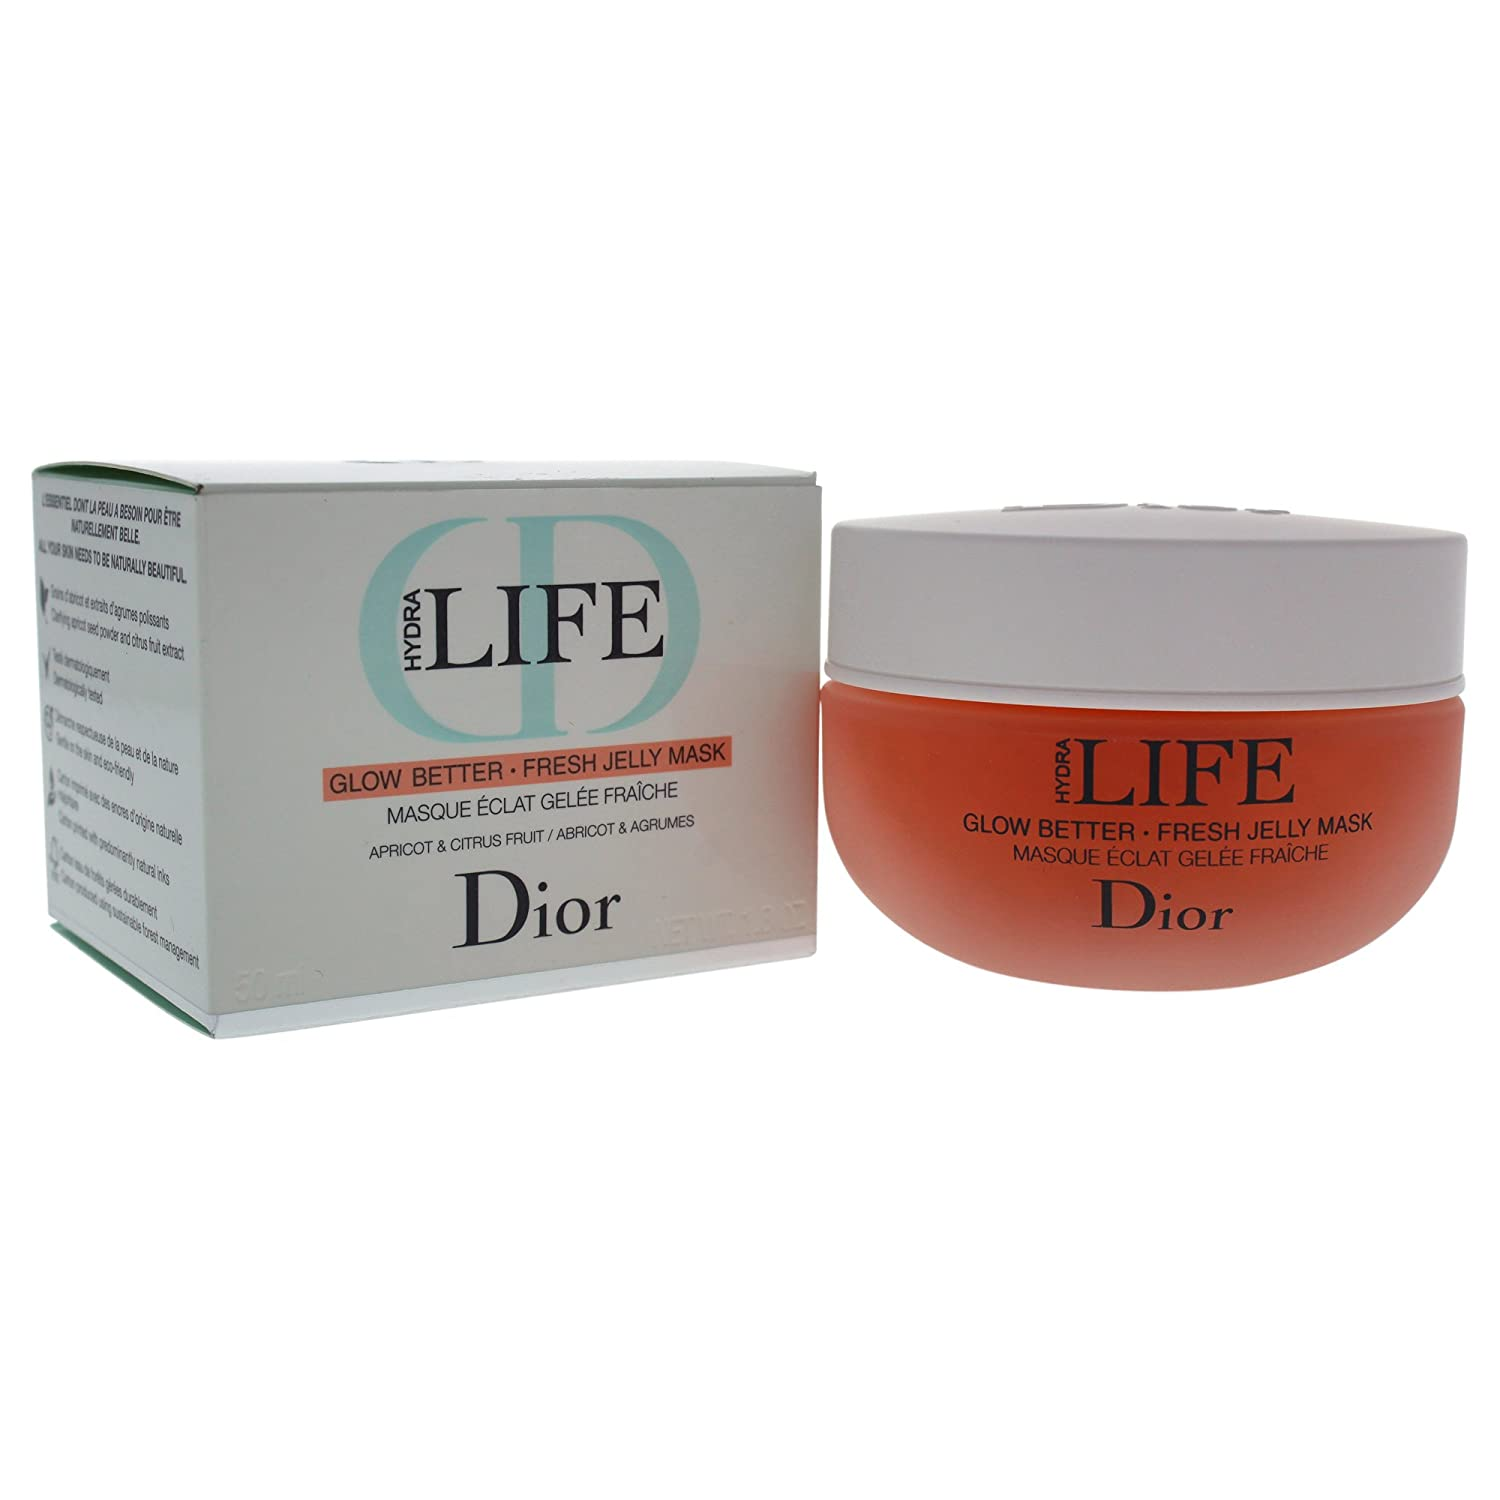 Hydra Life Glow Better Fresh Jelly Mask by Dior #19